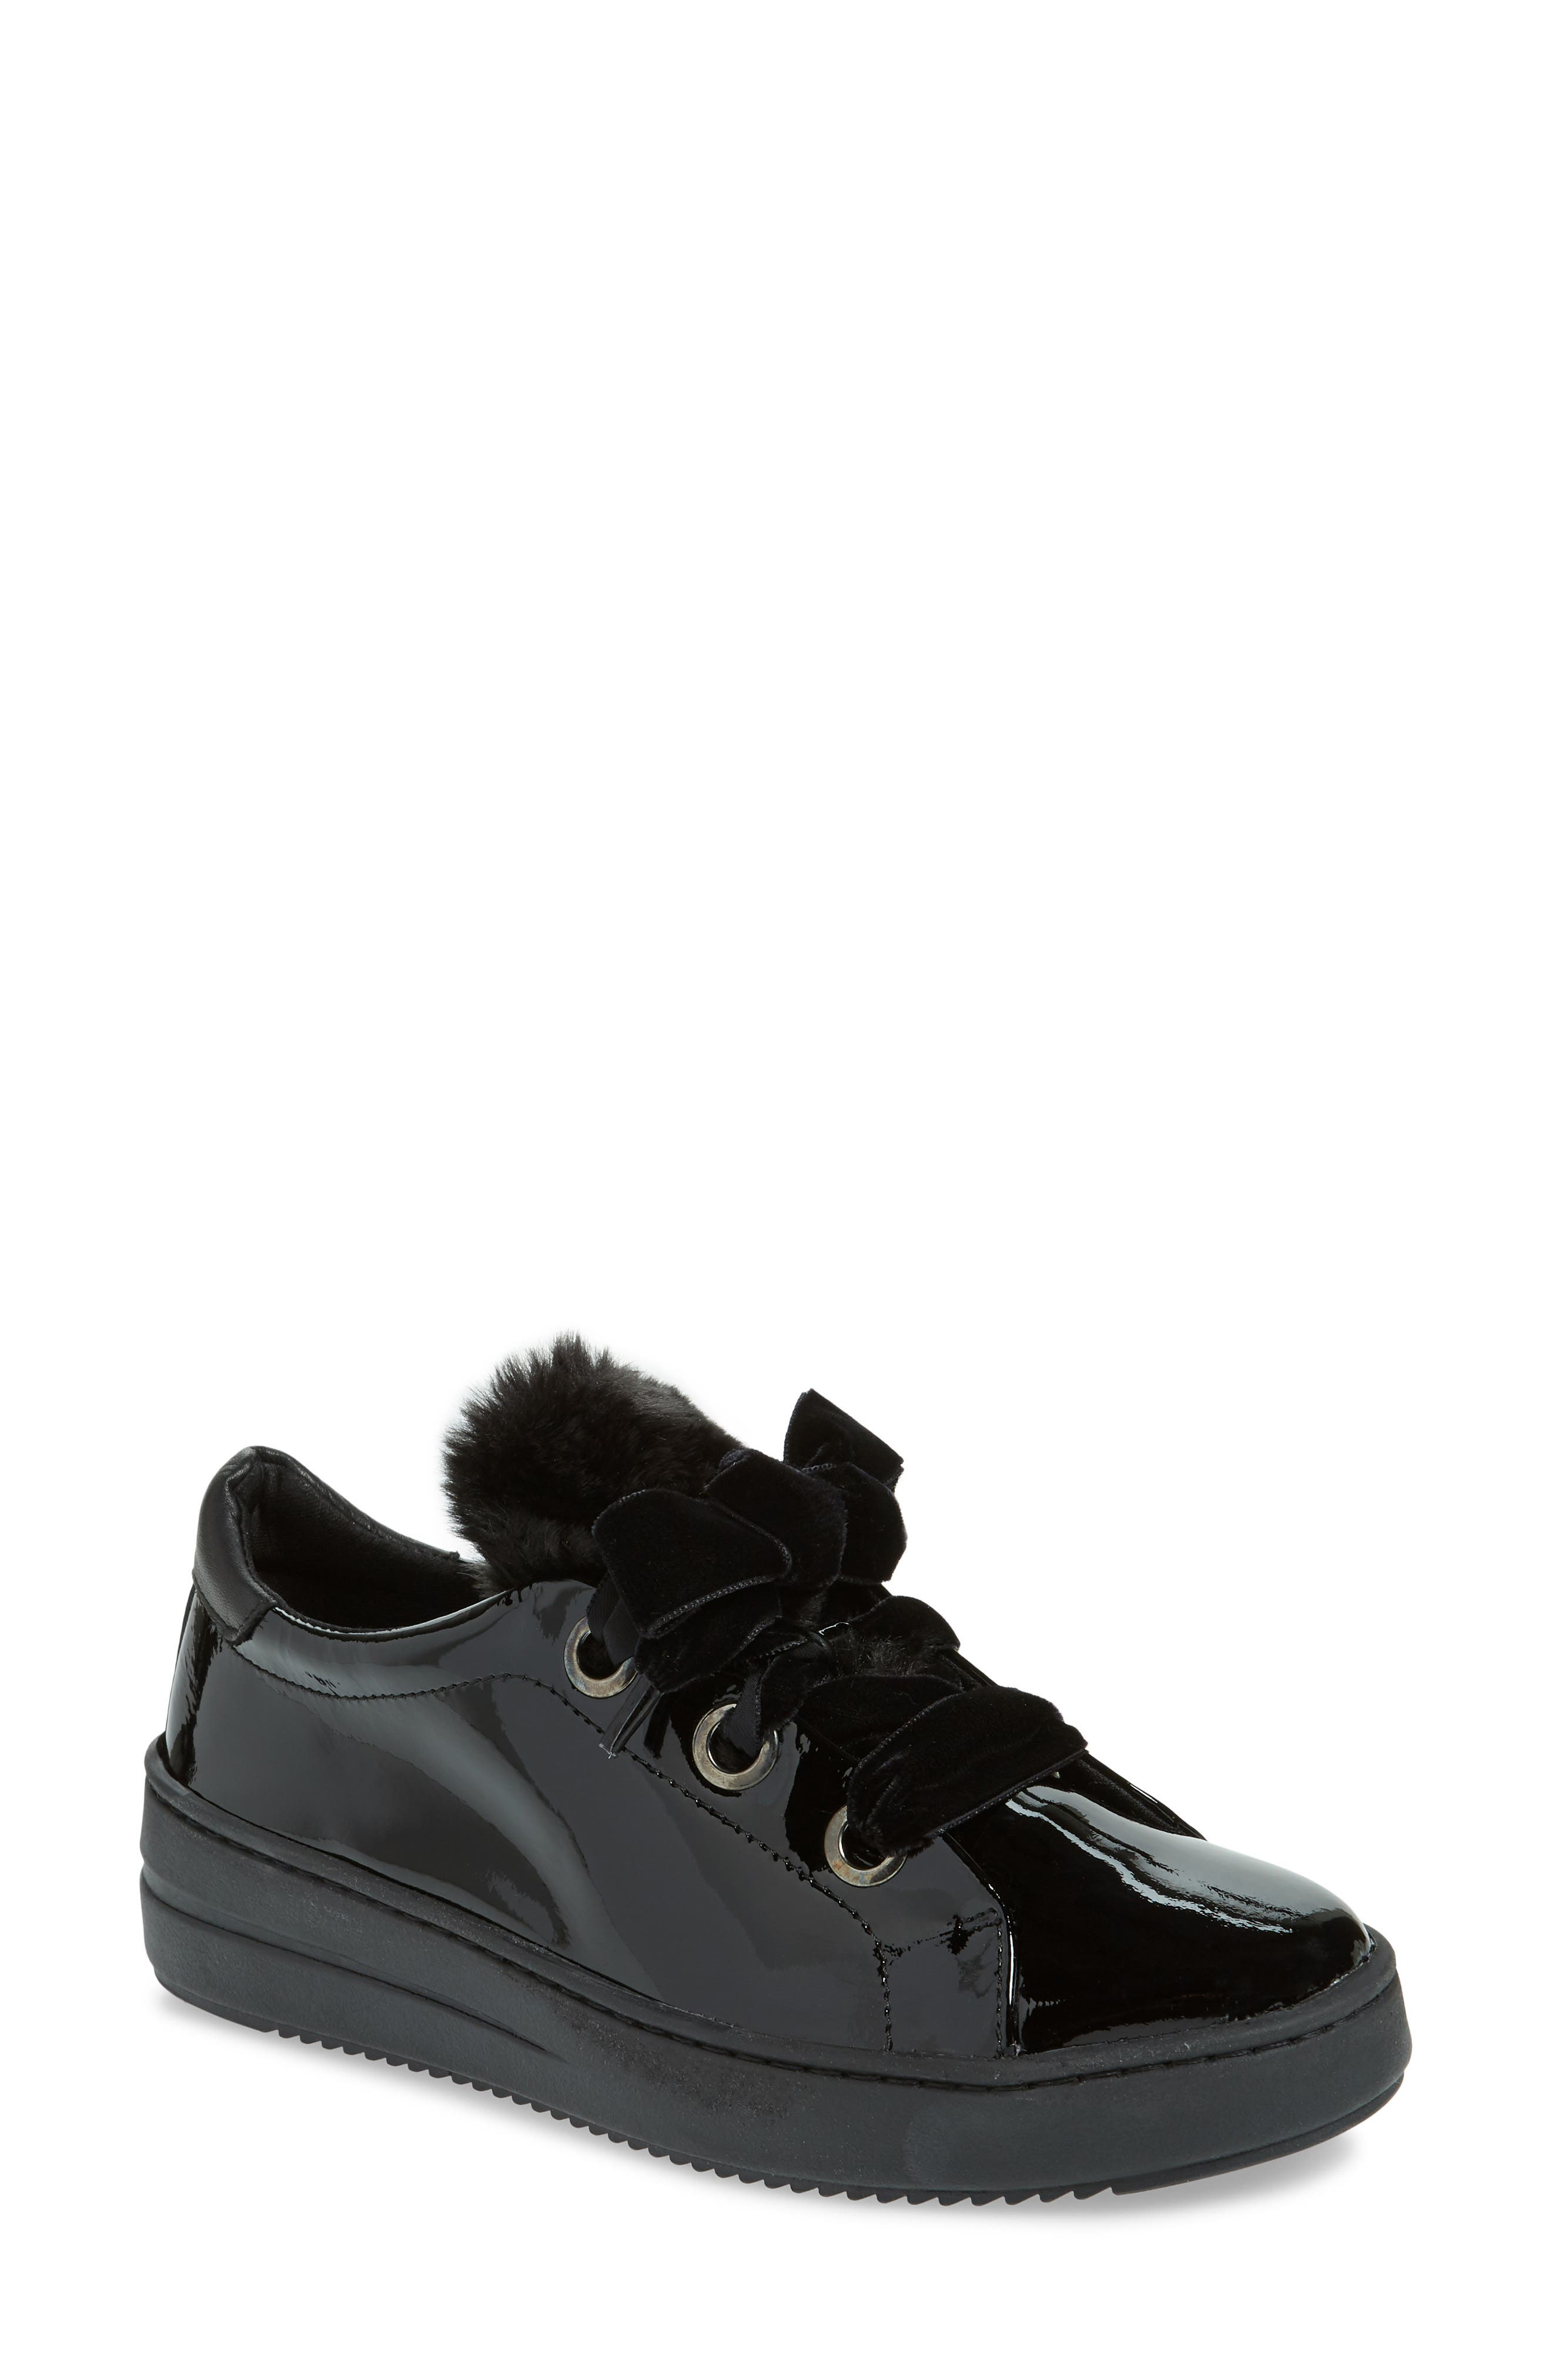 Groove Faux-Shearling Trim Sneaker,                         Main,                         color, BLACK PATENT LEATHER